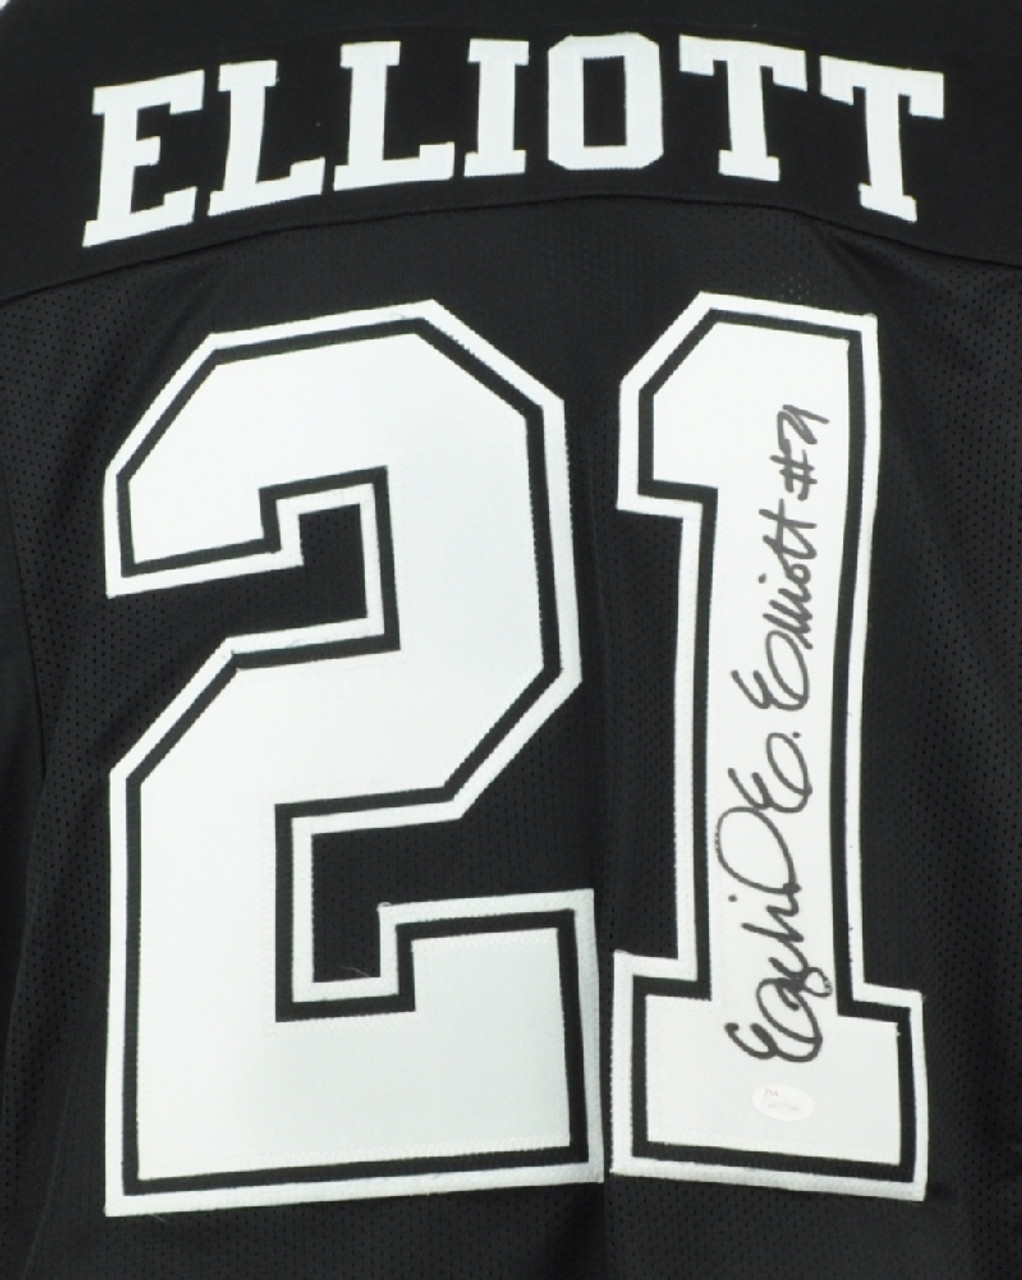 online retailer 8f275 141ad NFL Dallas Cowboys Running Back Ezekiel Elliott 21 Signed Autographed XL  Black Replica Jersey JSA Mens